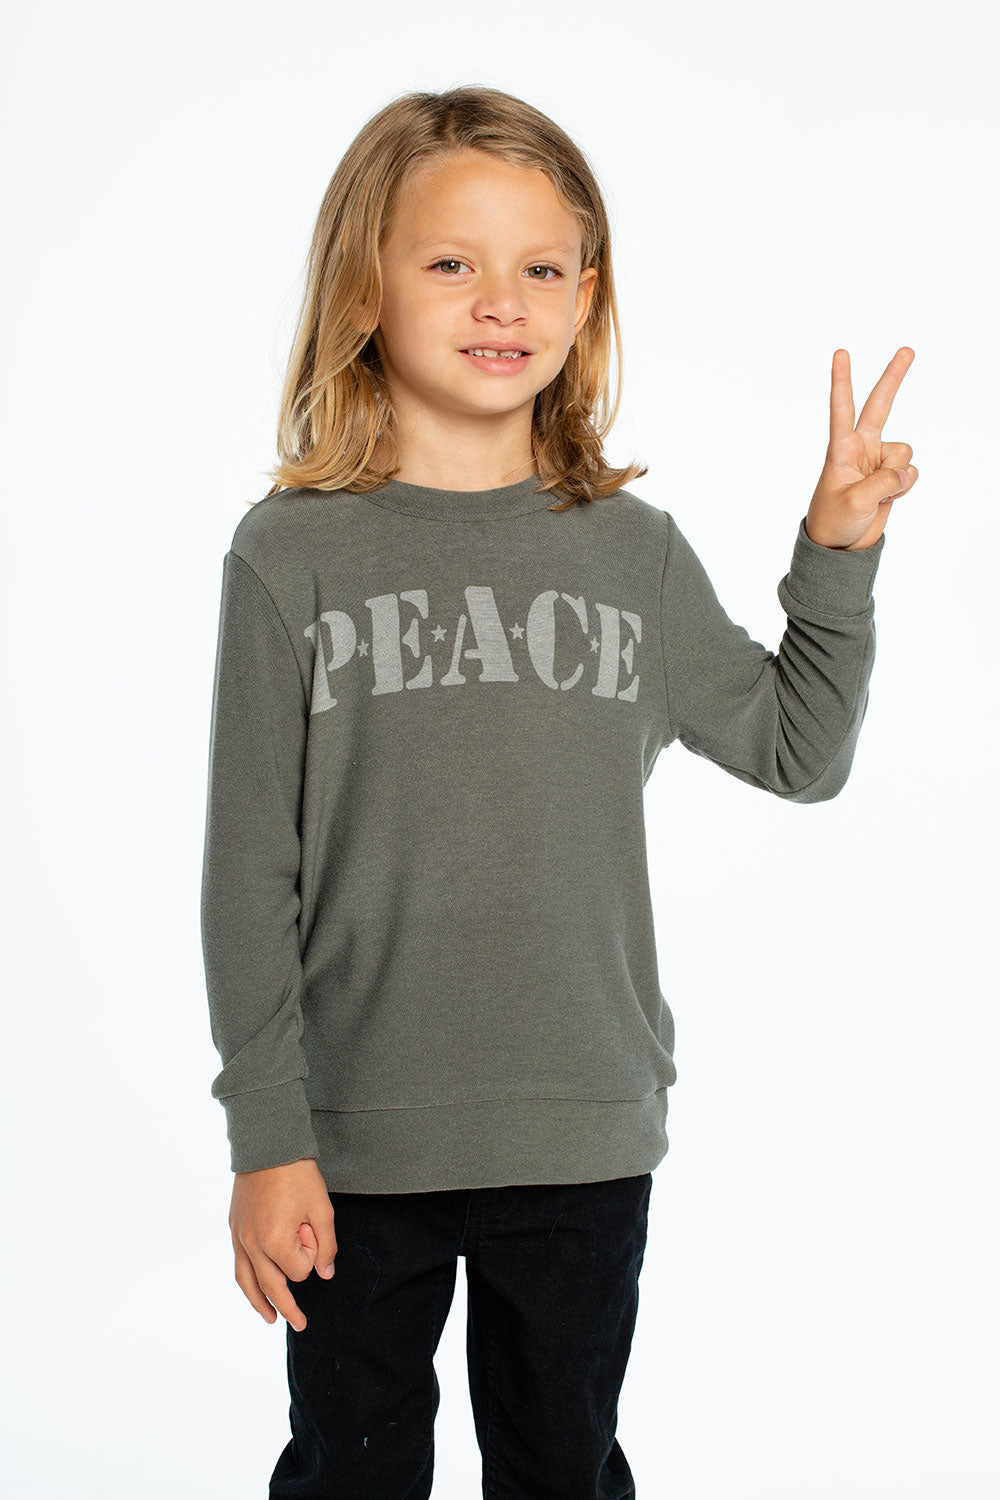 Peace BOYS - chaserbrand